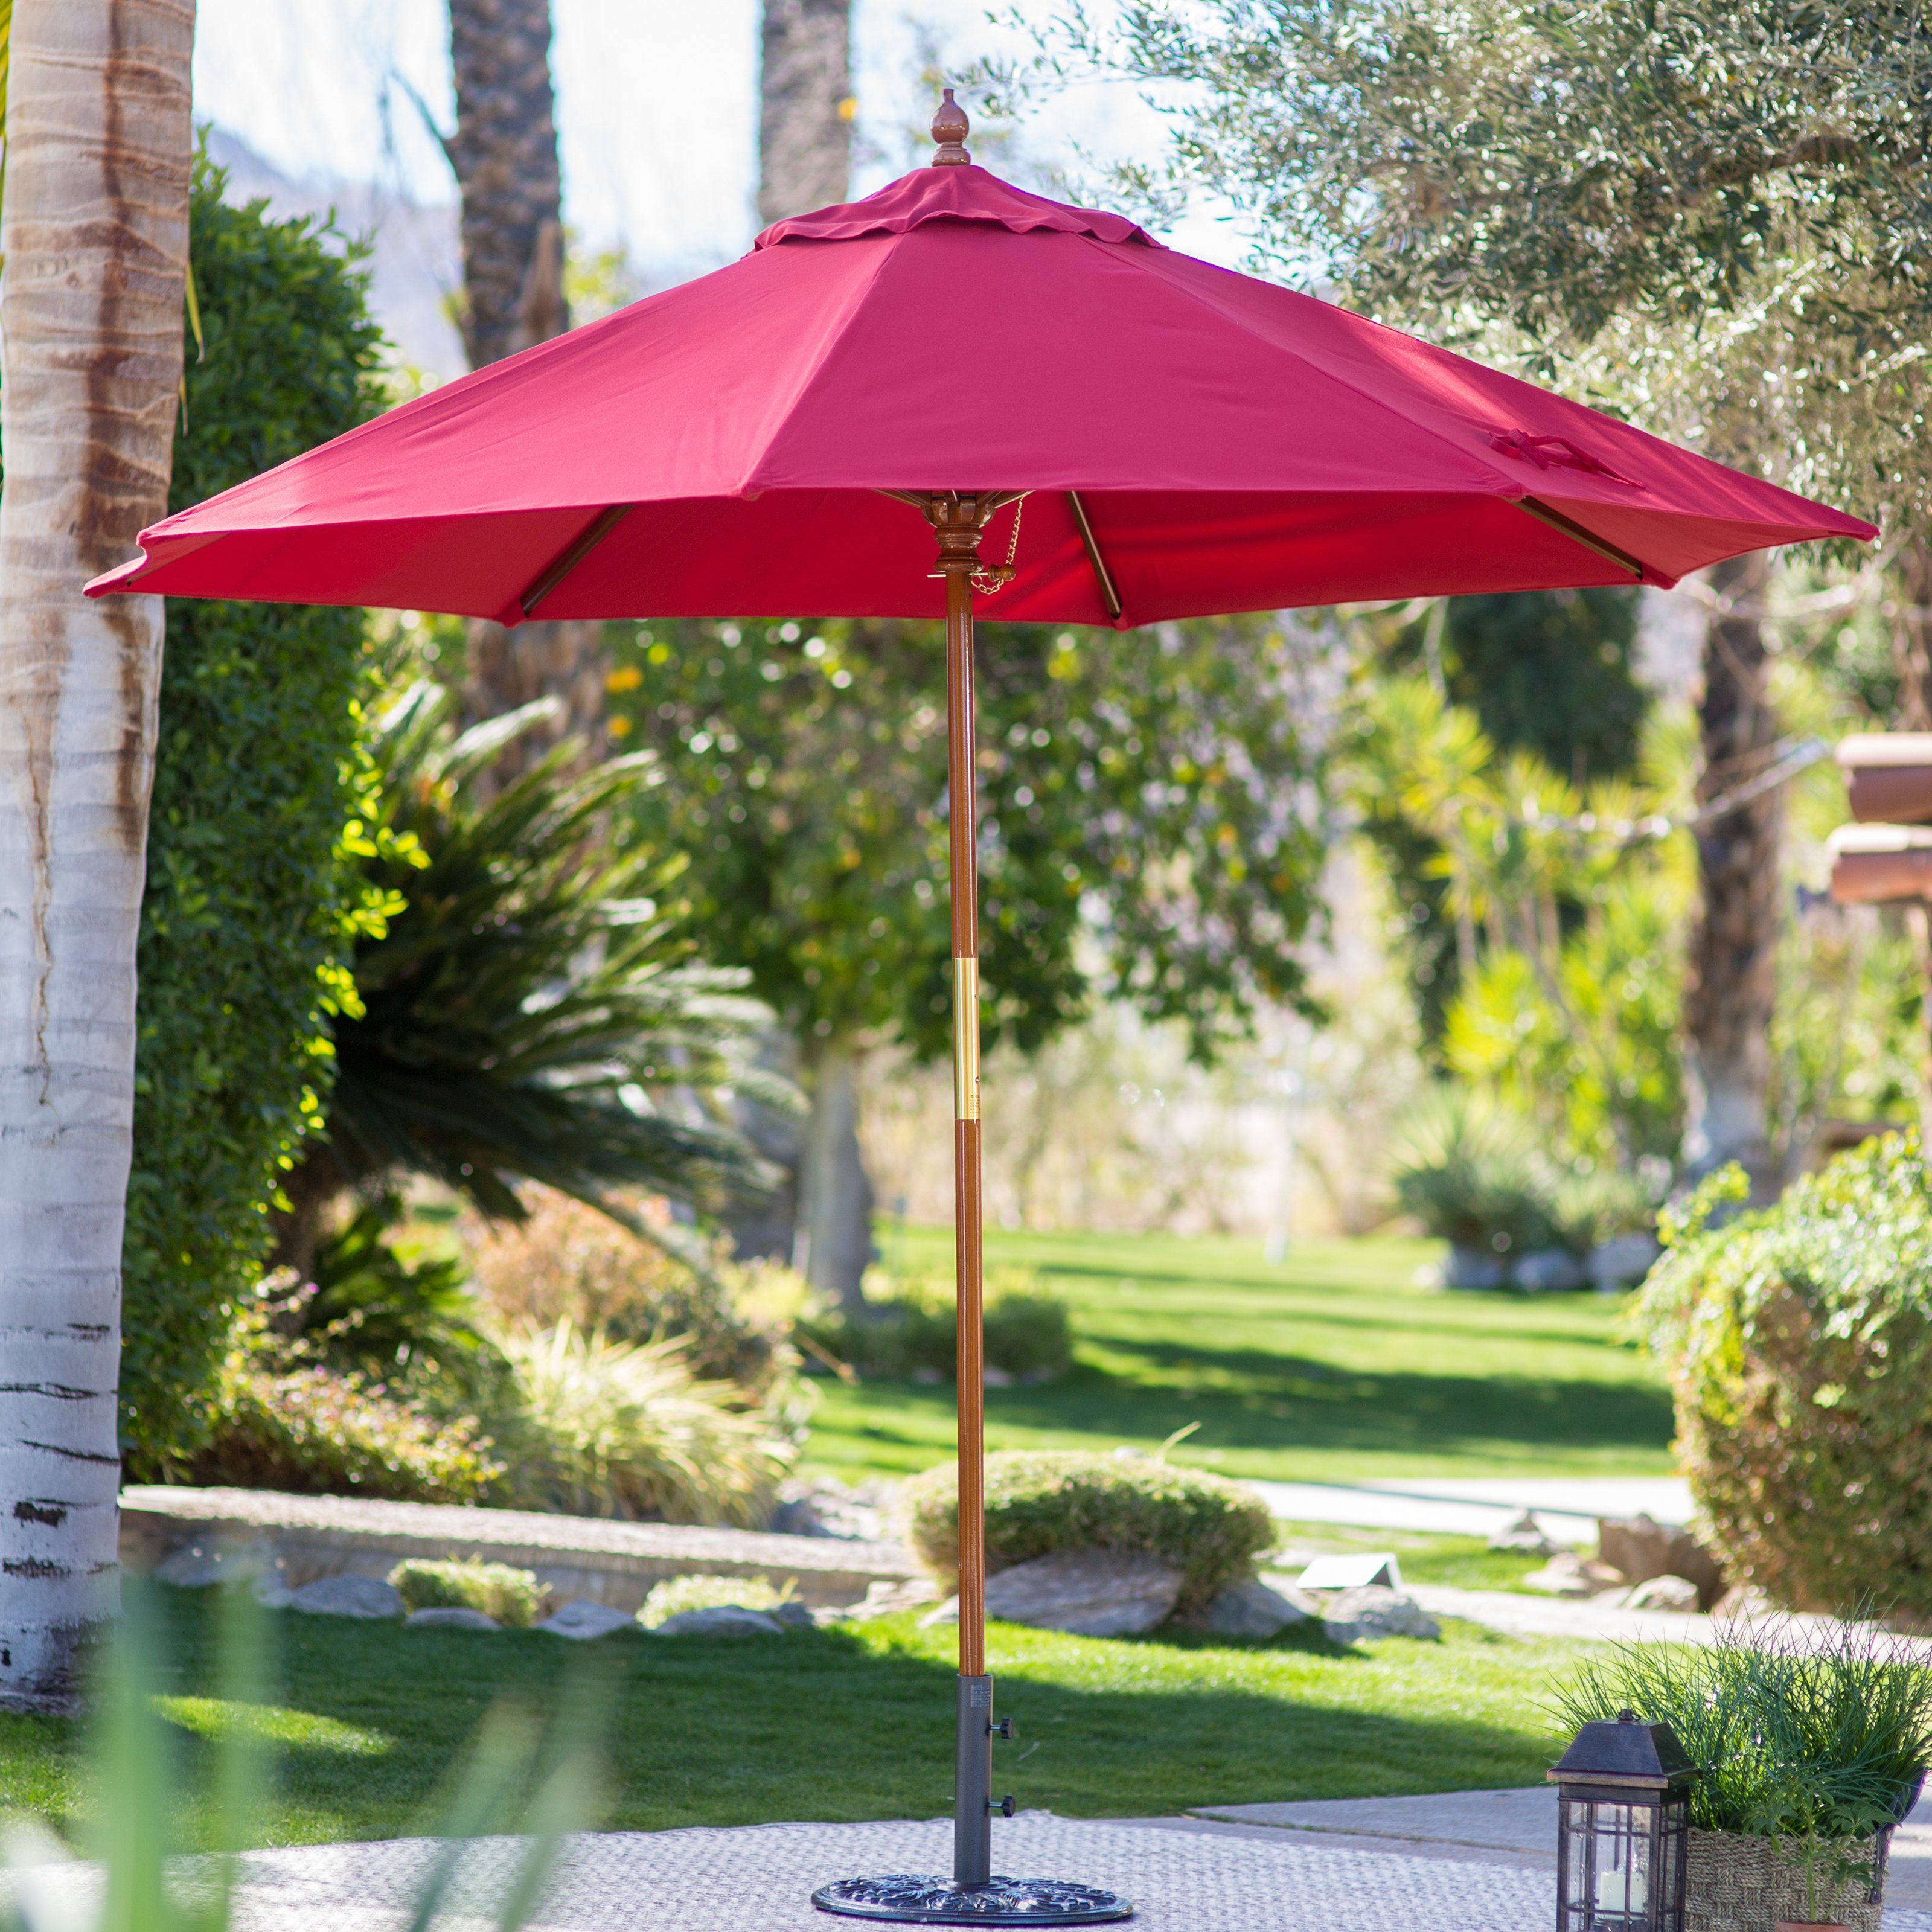 Belham Living 9 ft. Wood Commercial-Grade Sunbrella Market Umbrella